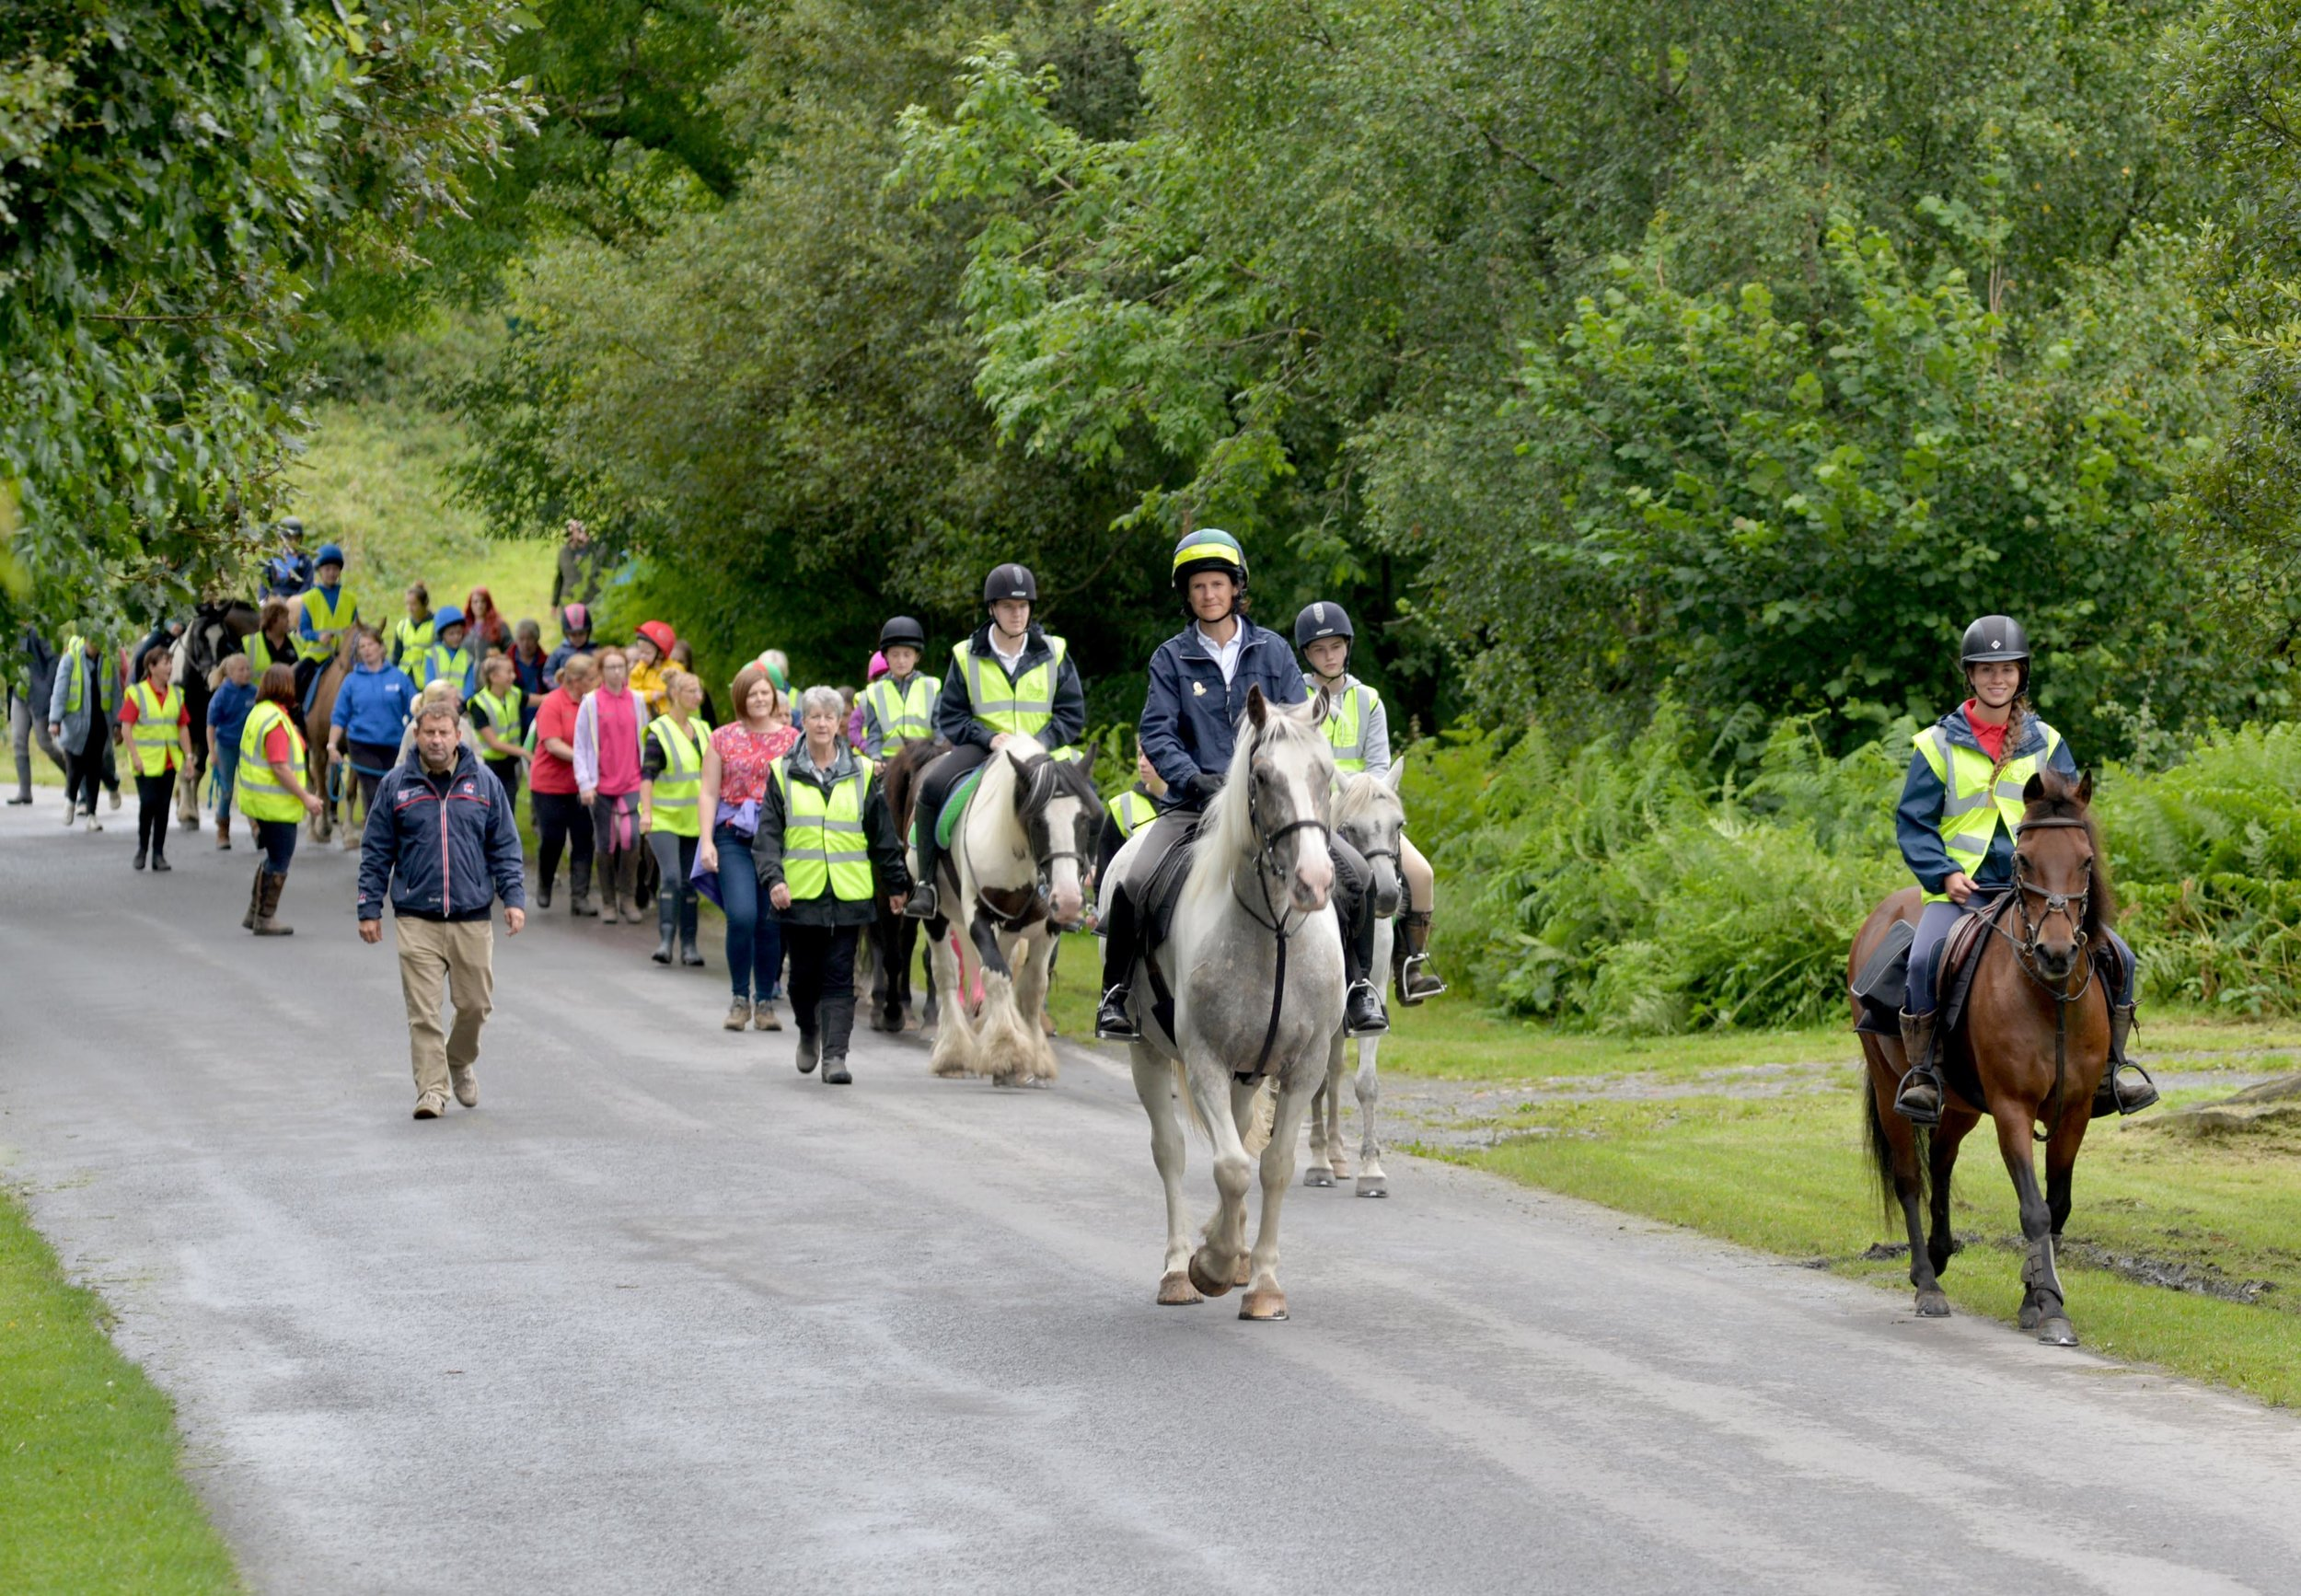 Sam Orde has undertaken a series of distance horse rides and carriage drives around the UK,